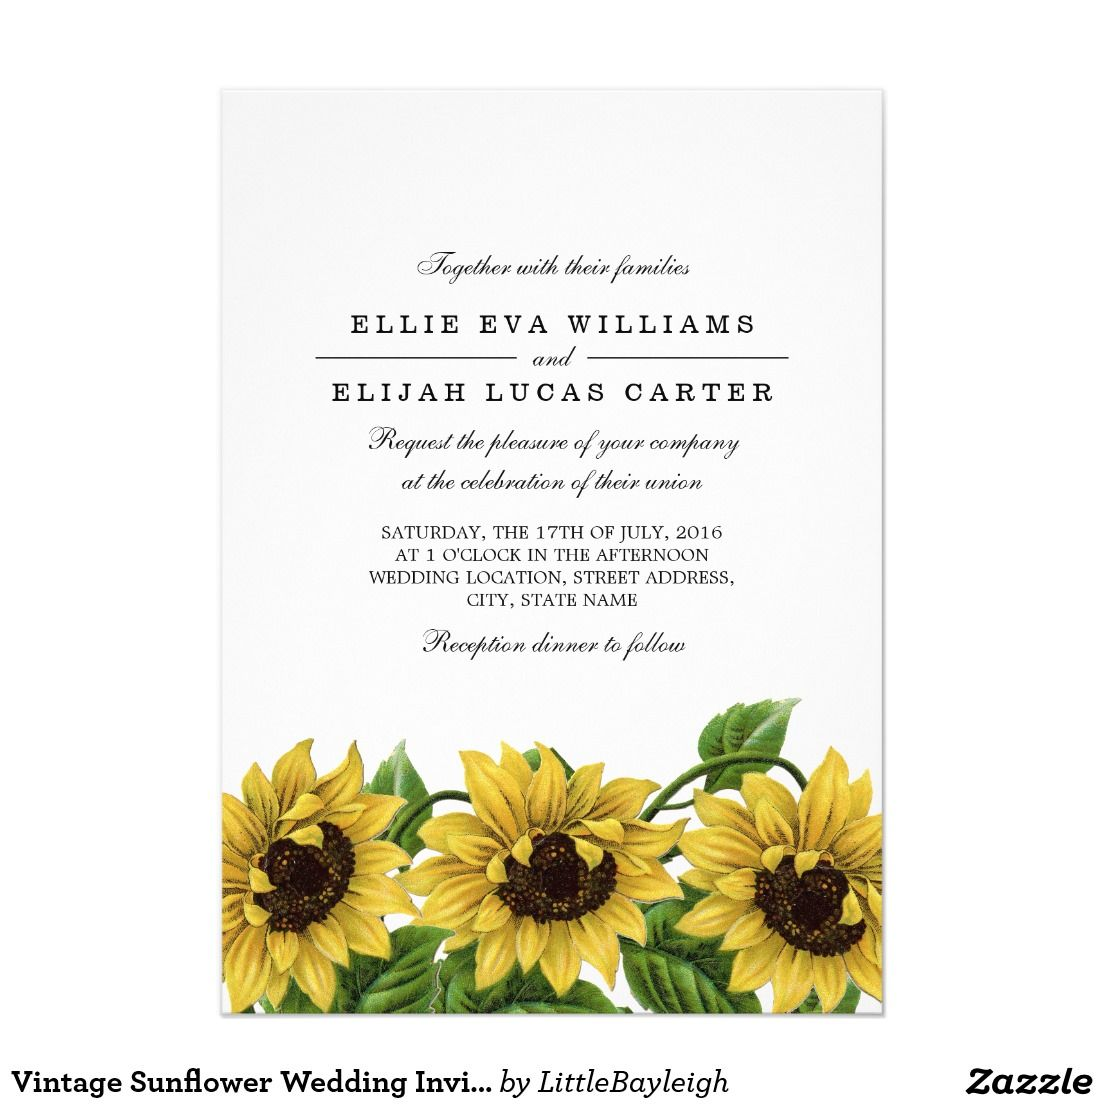 Vintage Sunflower Wedding Invitations Sunflower Wedding